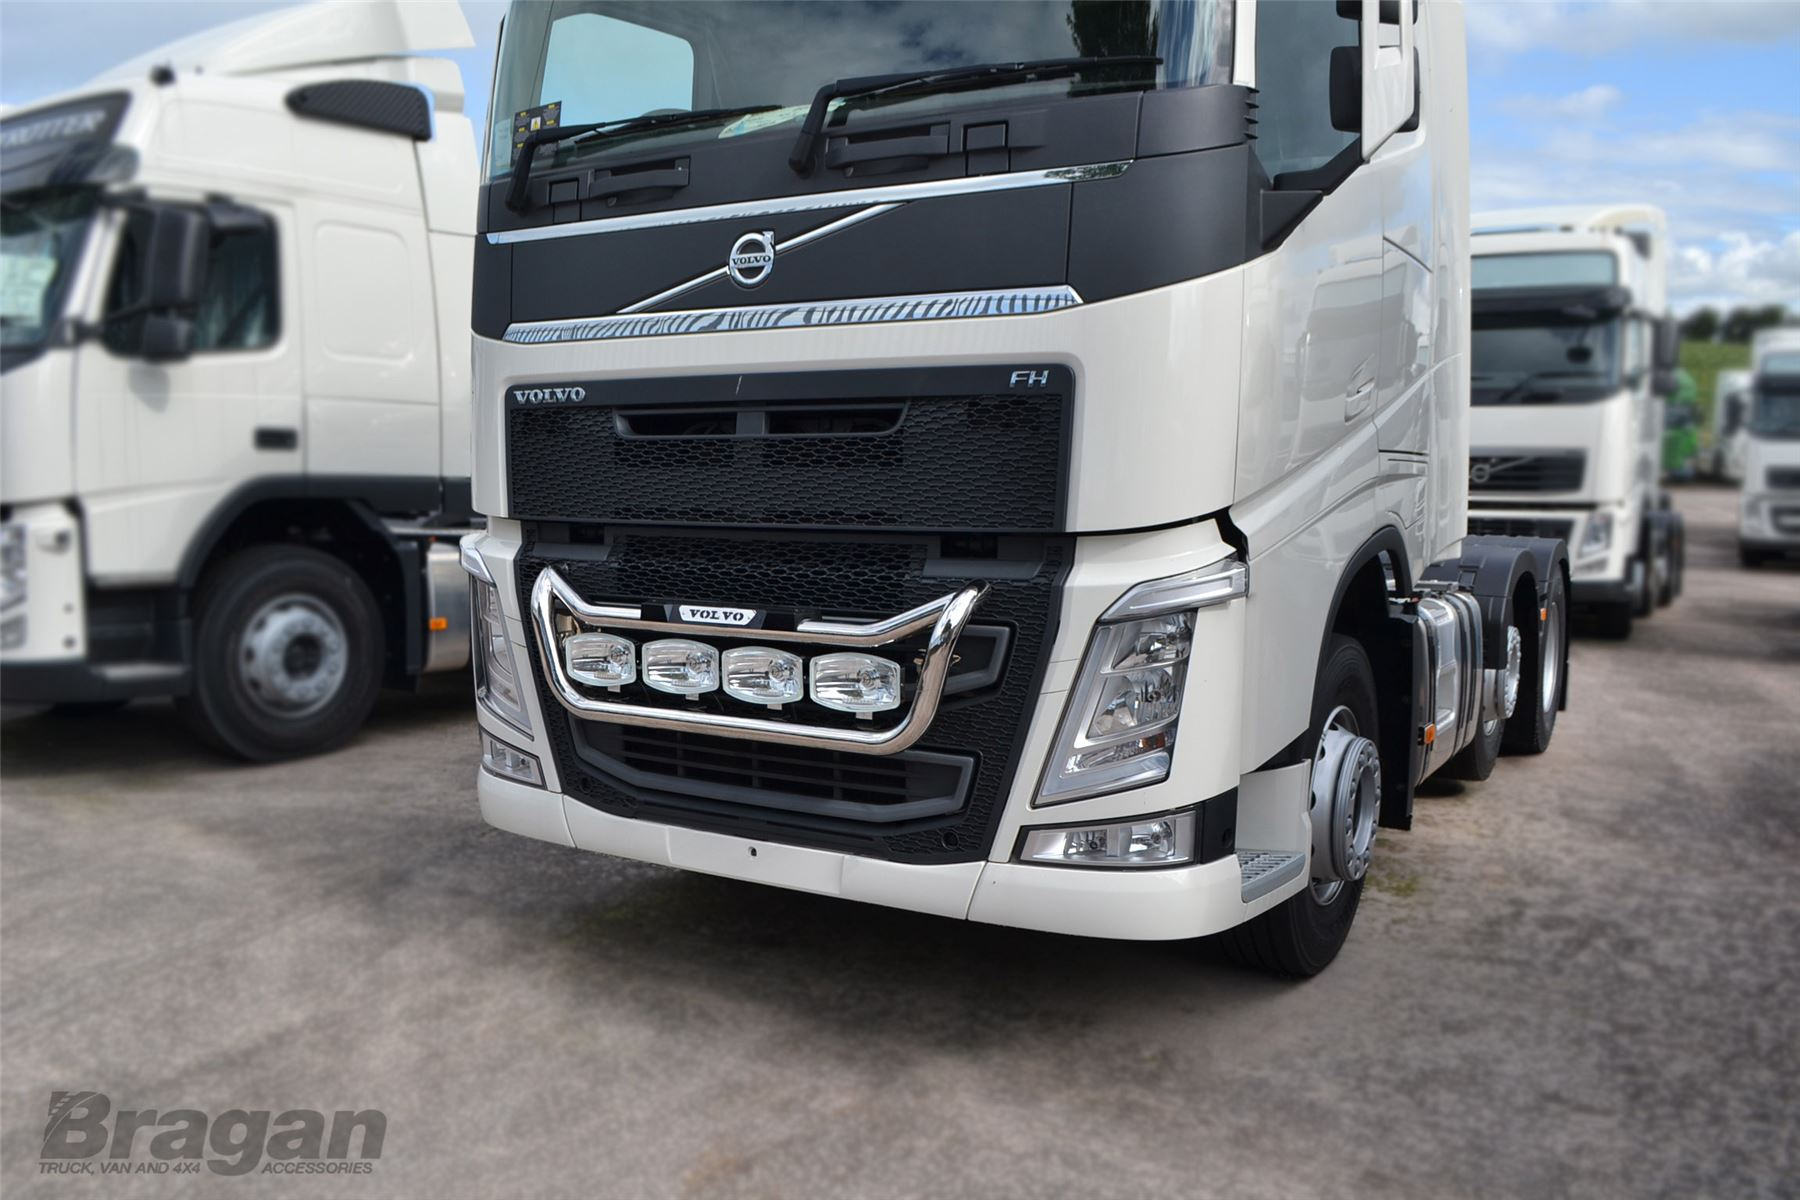 beautiful price brake volvo truck tractor image pinterest sale wallpaper fh media for the range trucks list size new u pic x stretch all